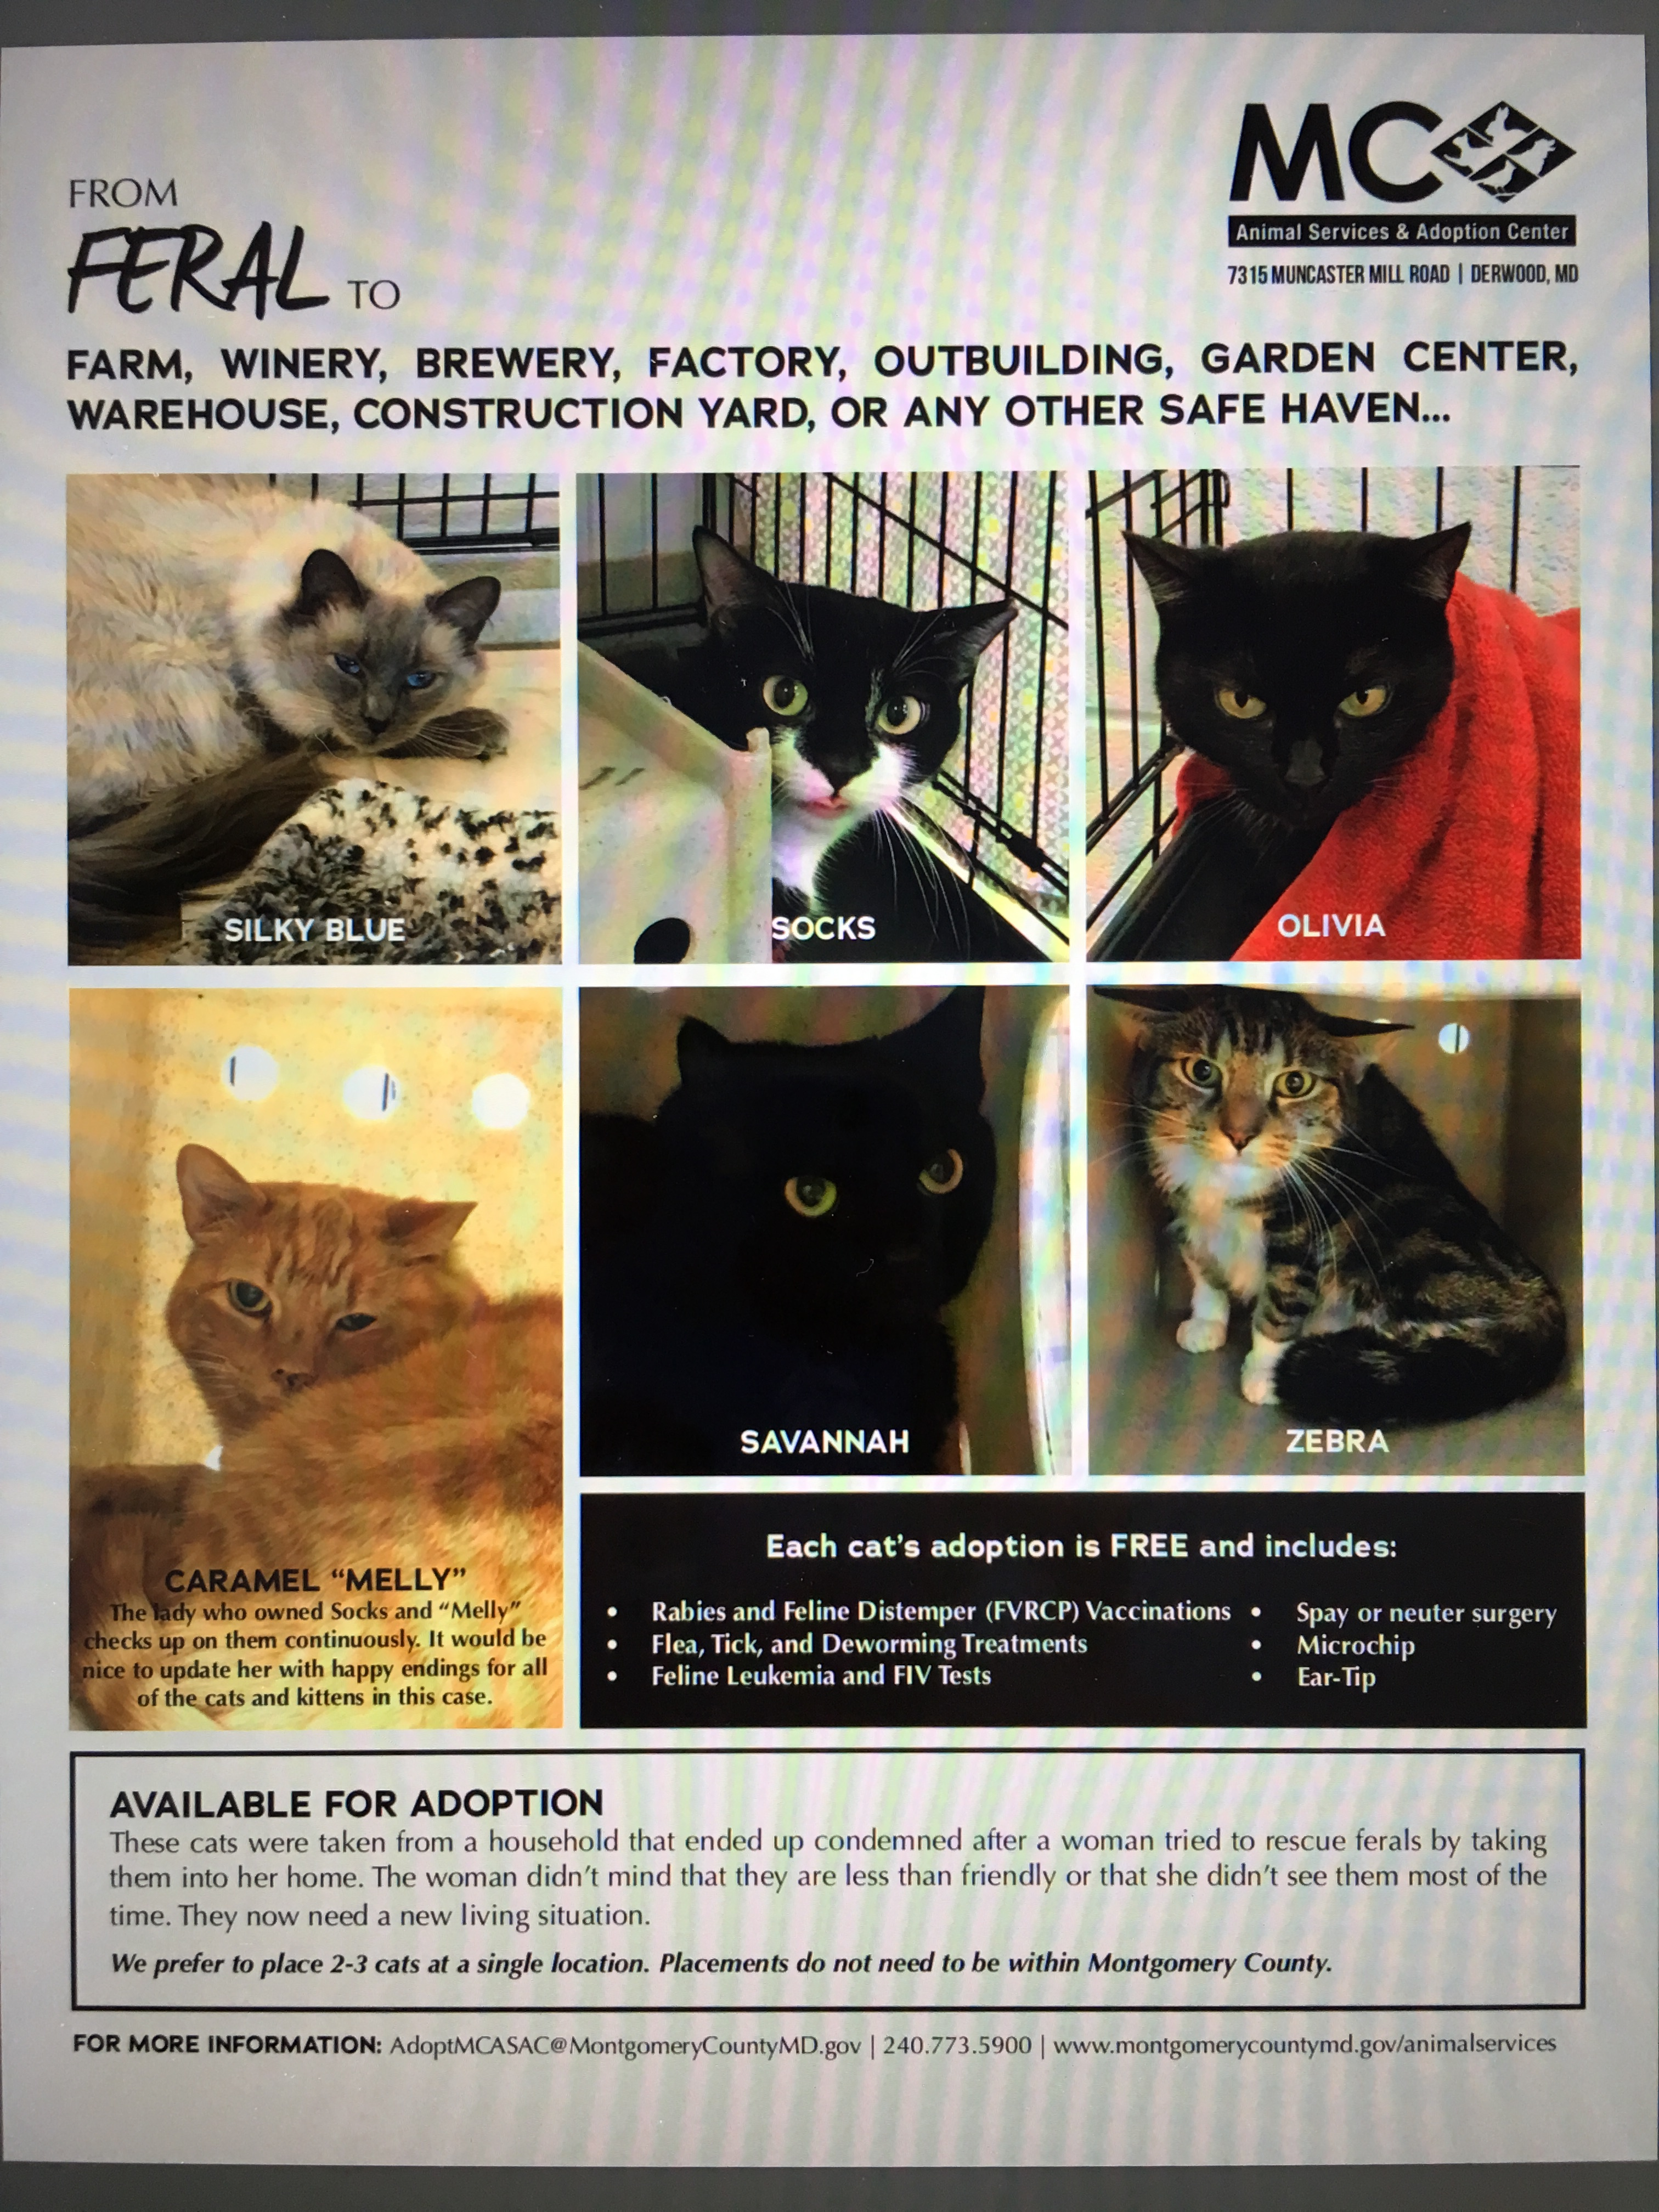 Adoption Center Near Me Cats - The O Guide